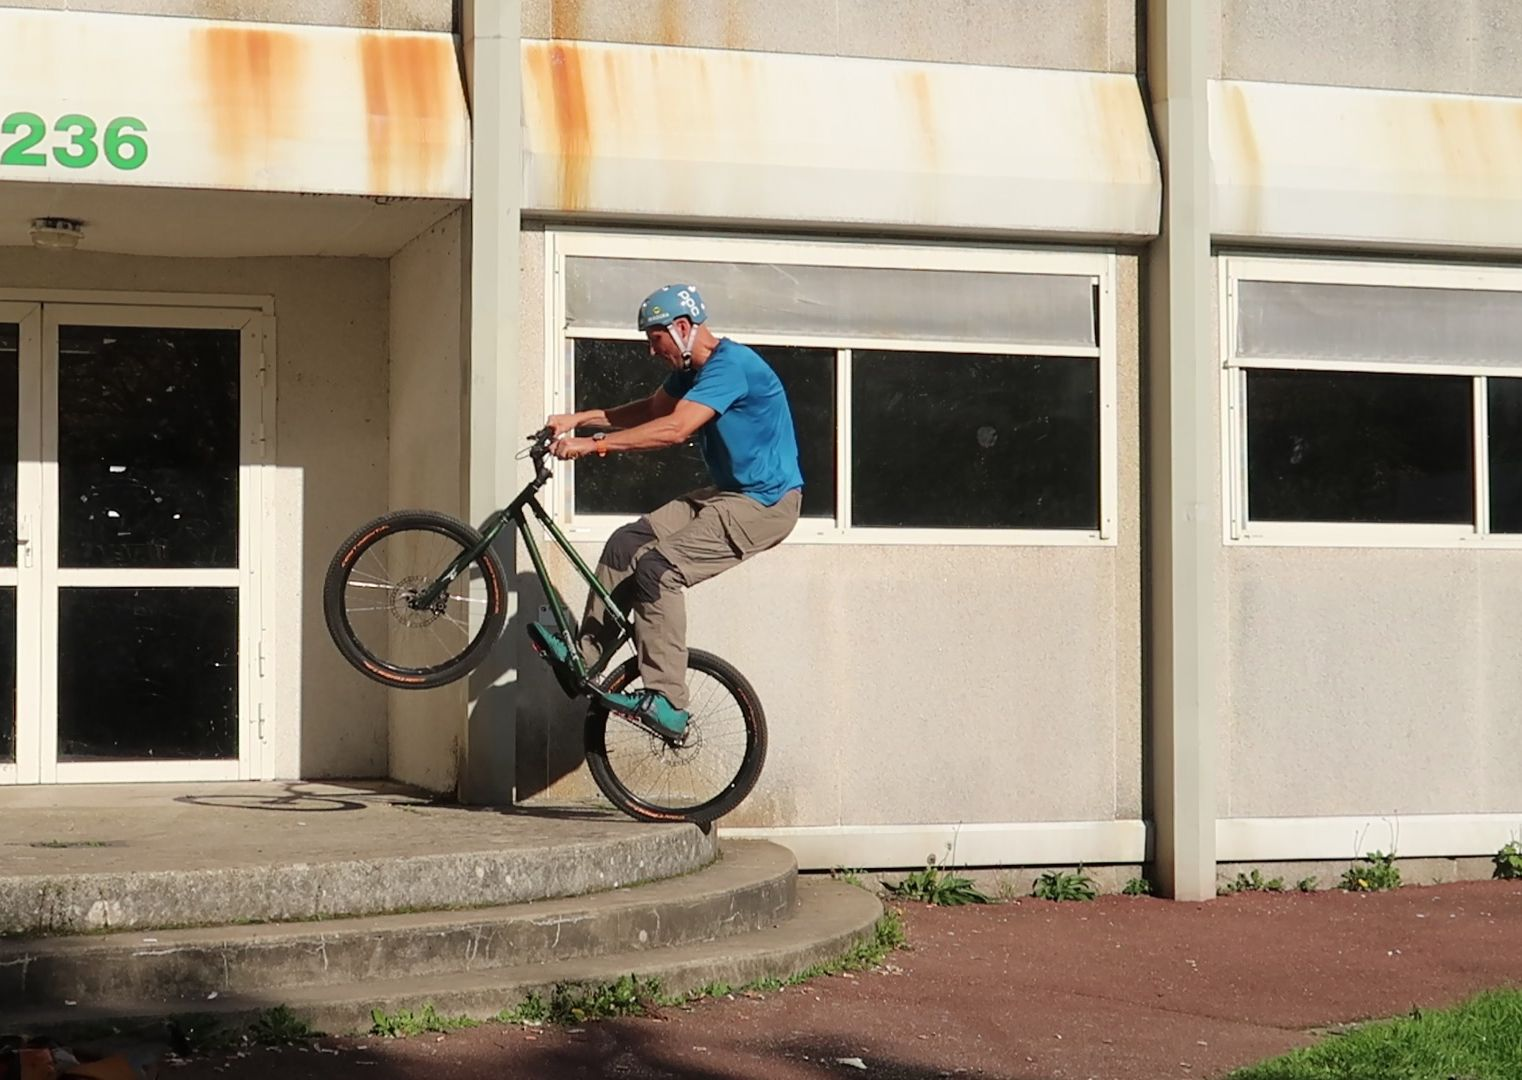 learning street trials on a 24-inch bike